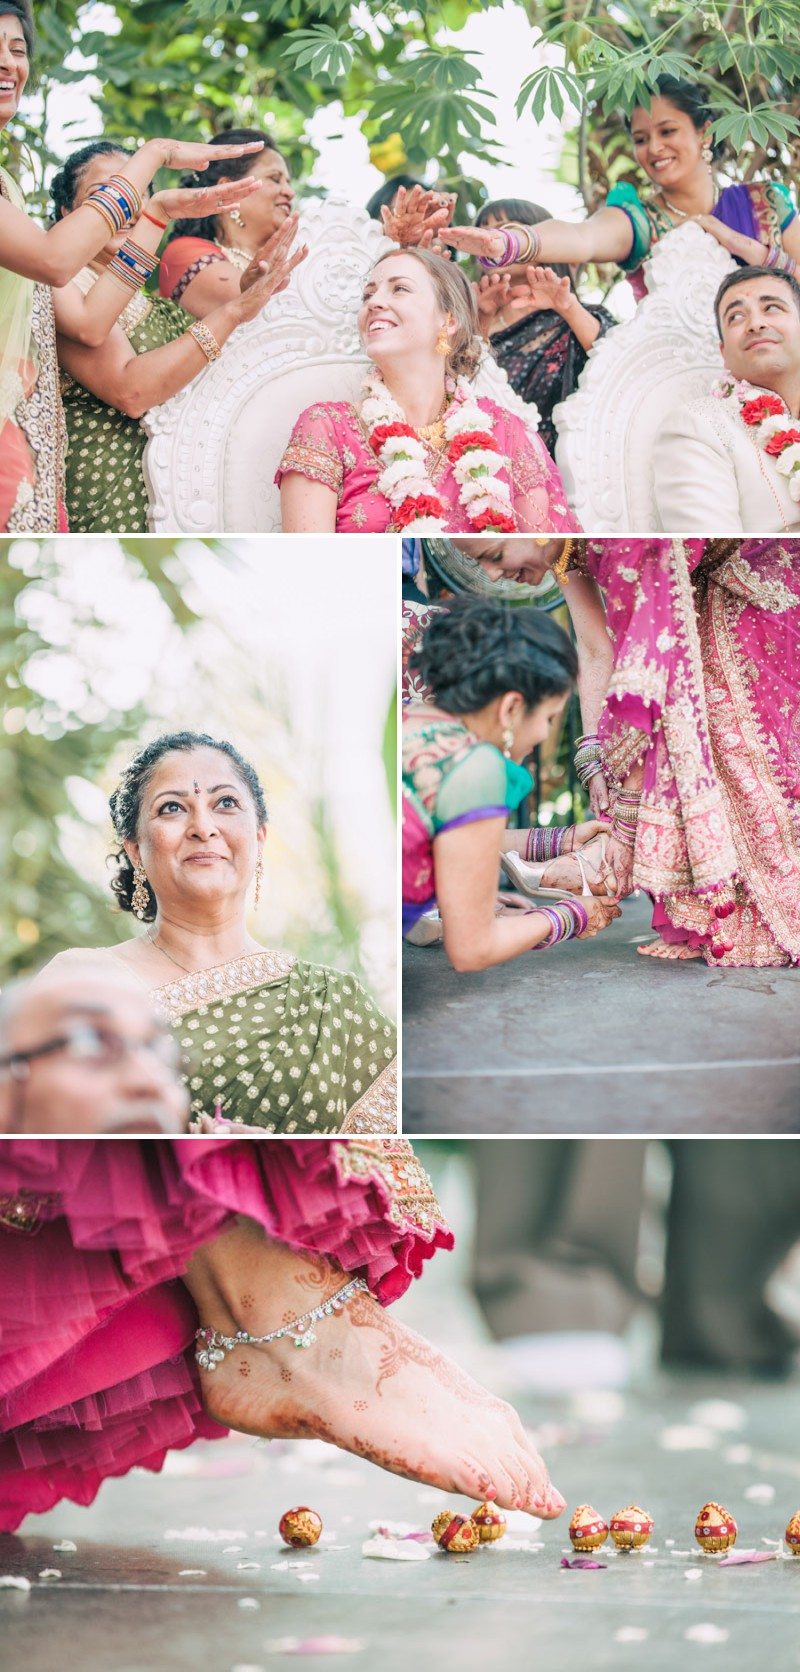 An Exotic Indian and English Fusion Wedding At Sefton Park Palm House In Liverpool With A Beautiful Vintage Lagonda And A Pink Handpicked Bouquet By Wookie Photography._0006